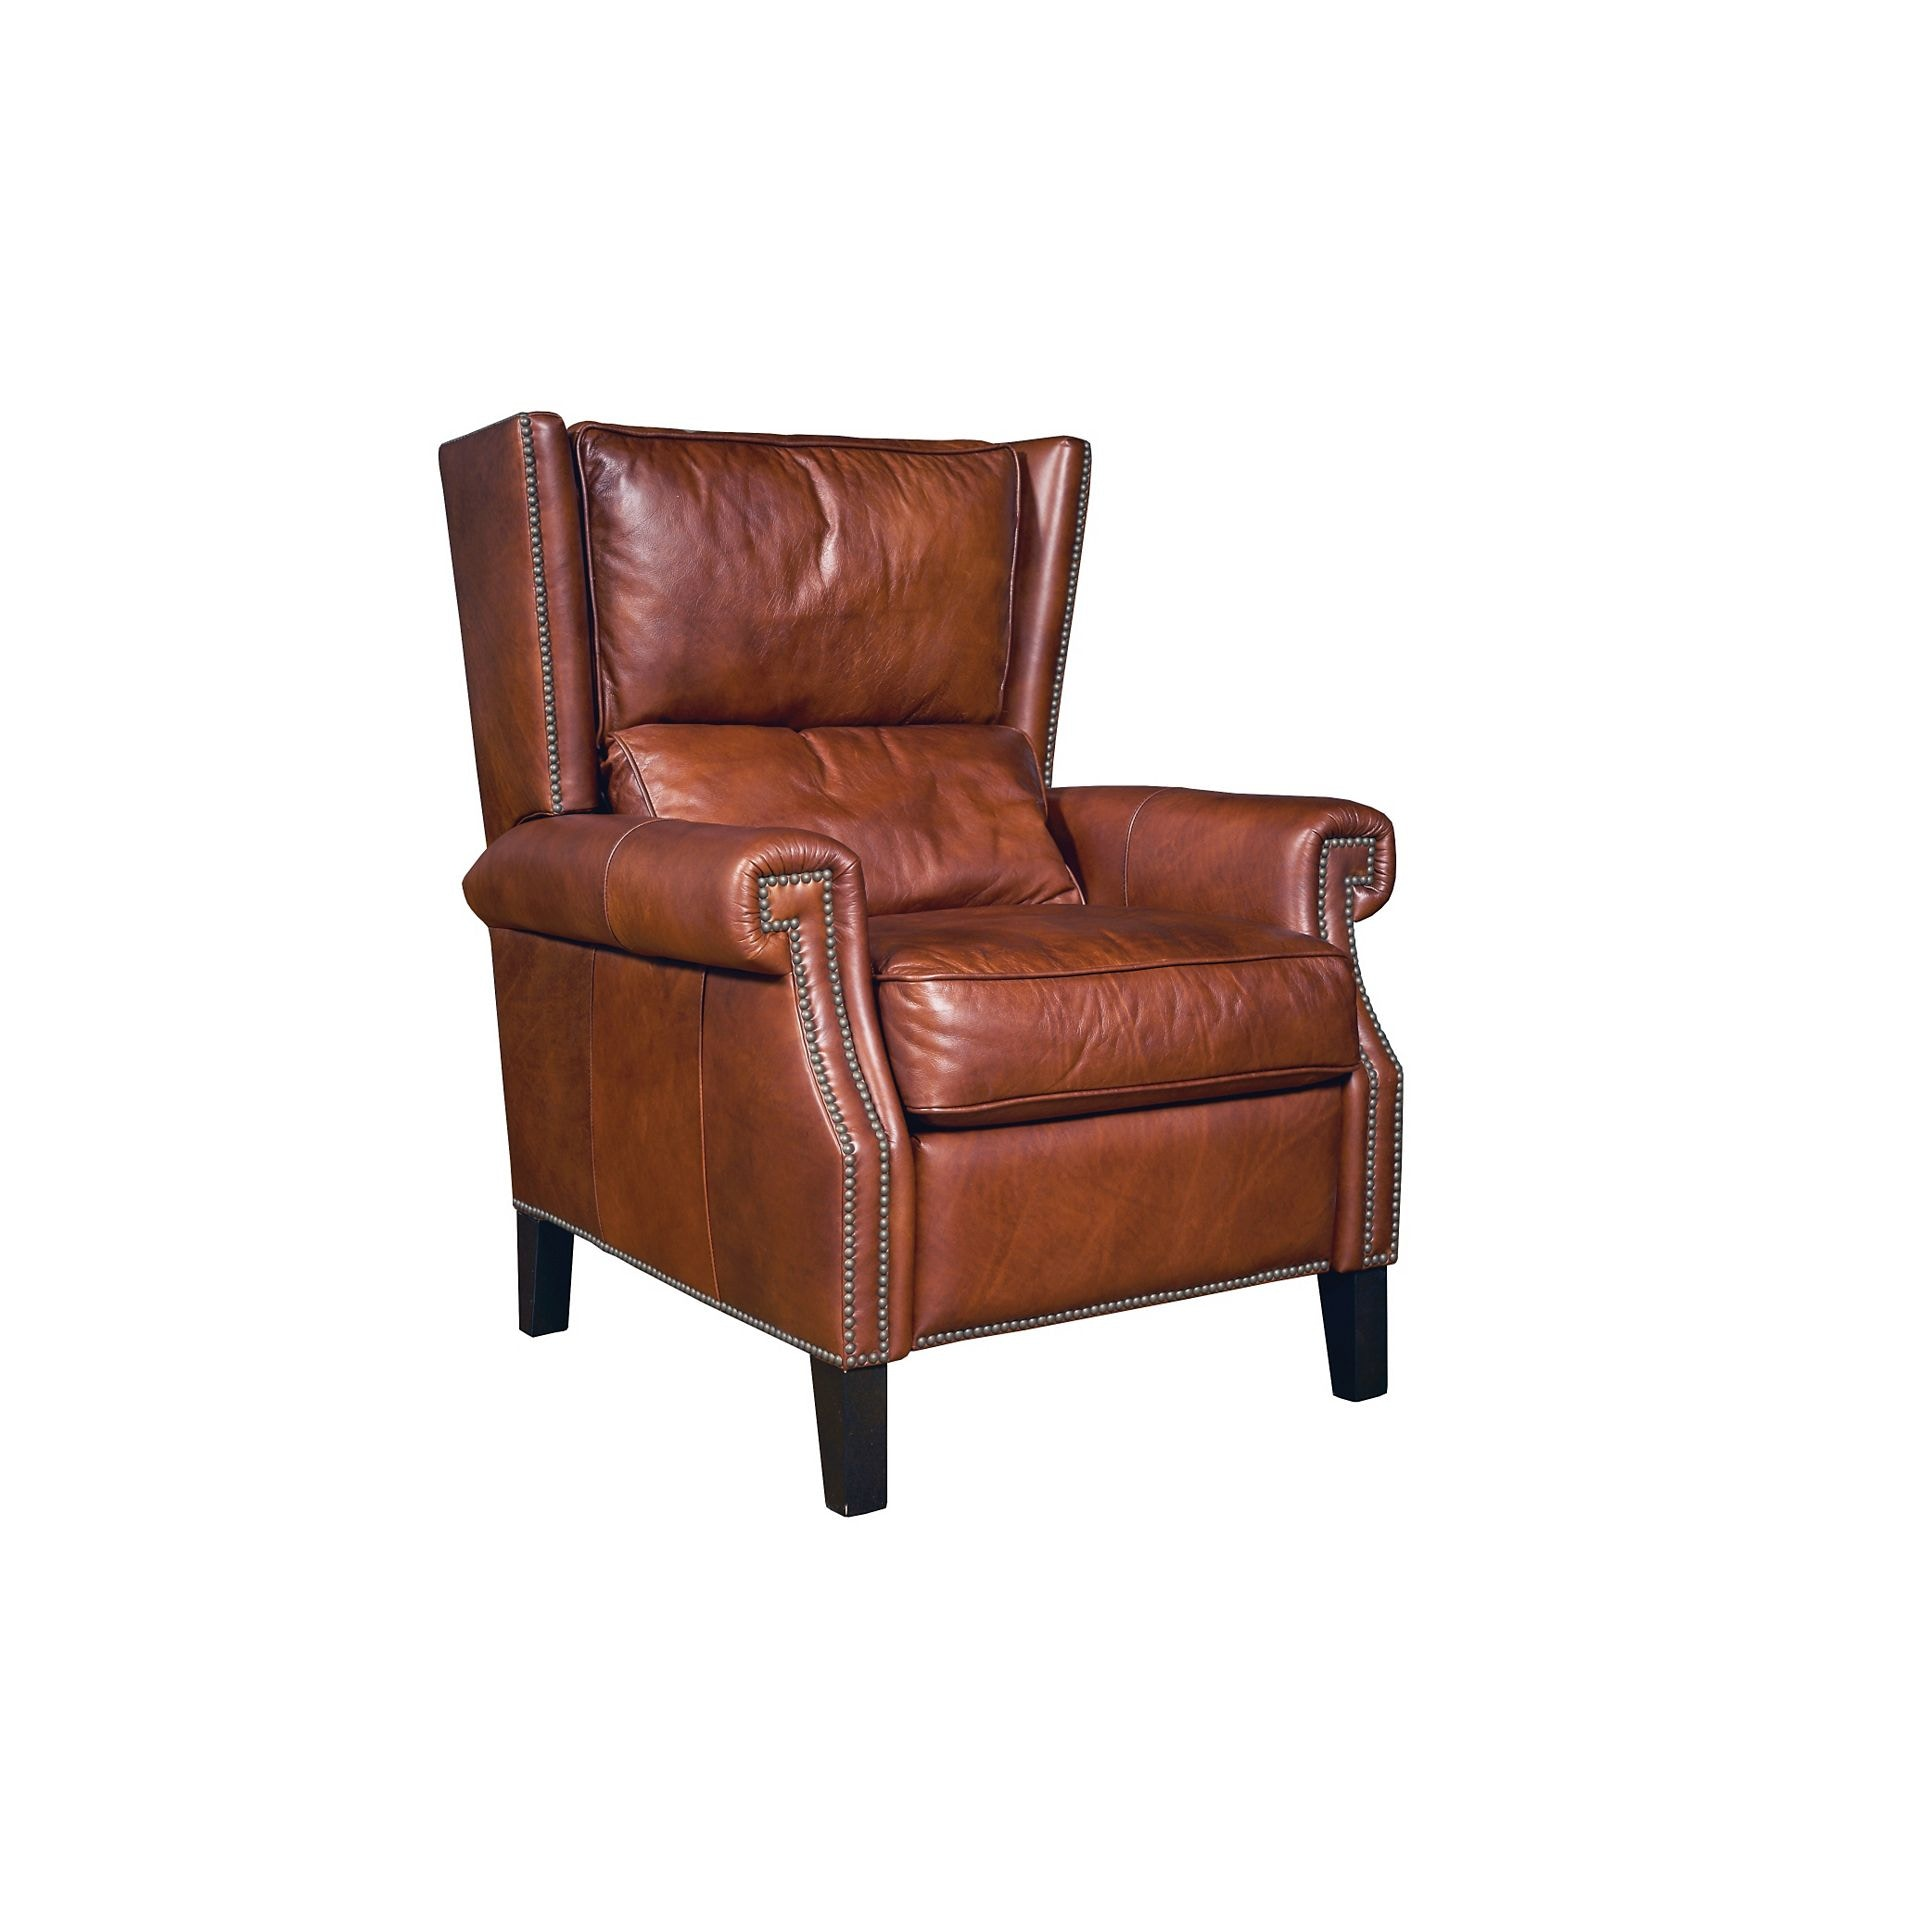 Henredon Furniture Henredon Leather Company Aidan Recliner IL8873 RE